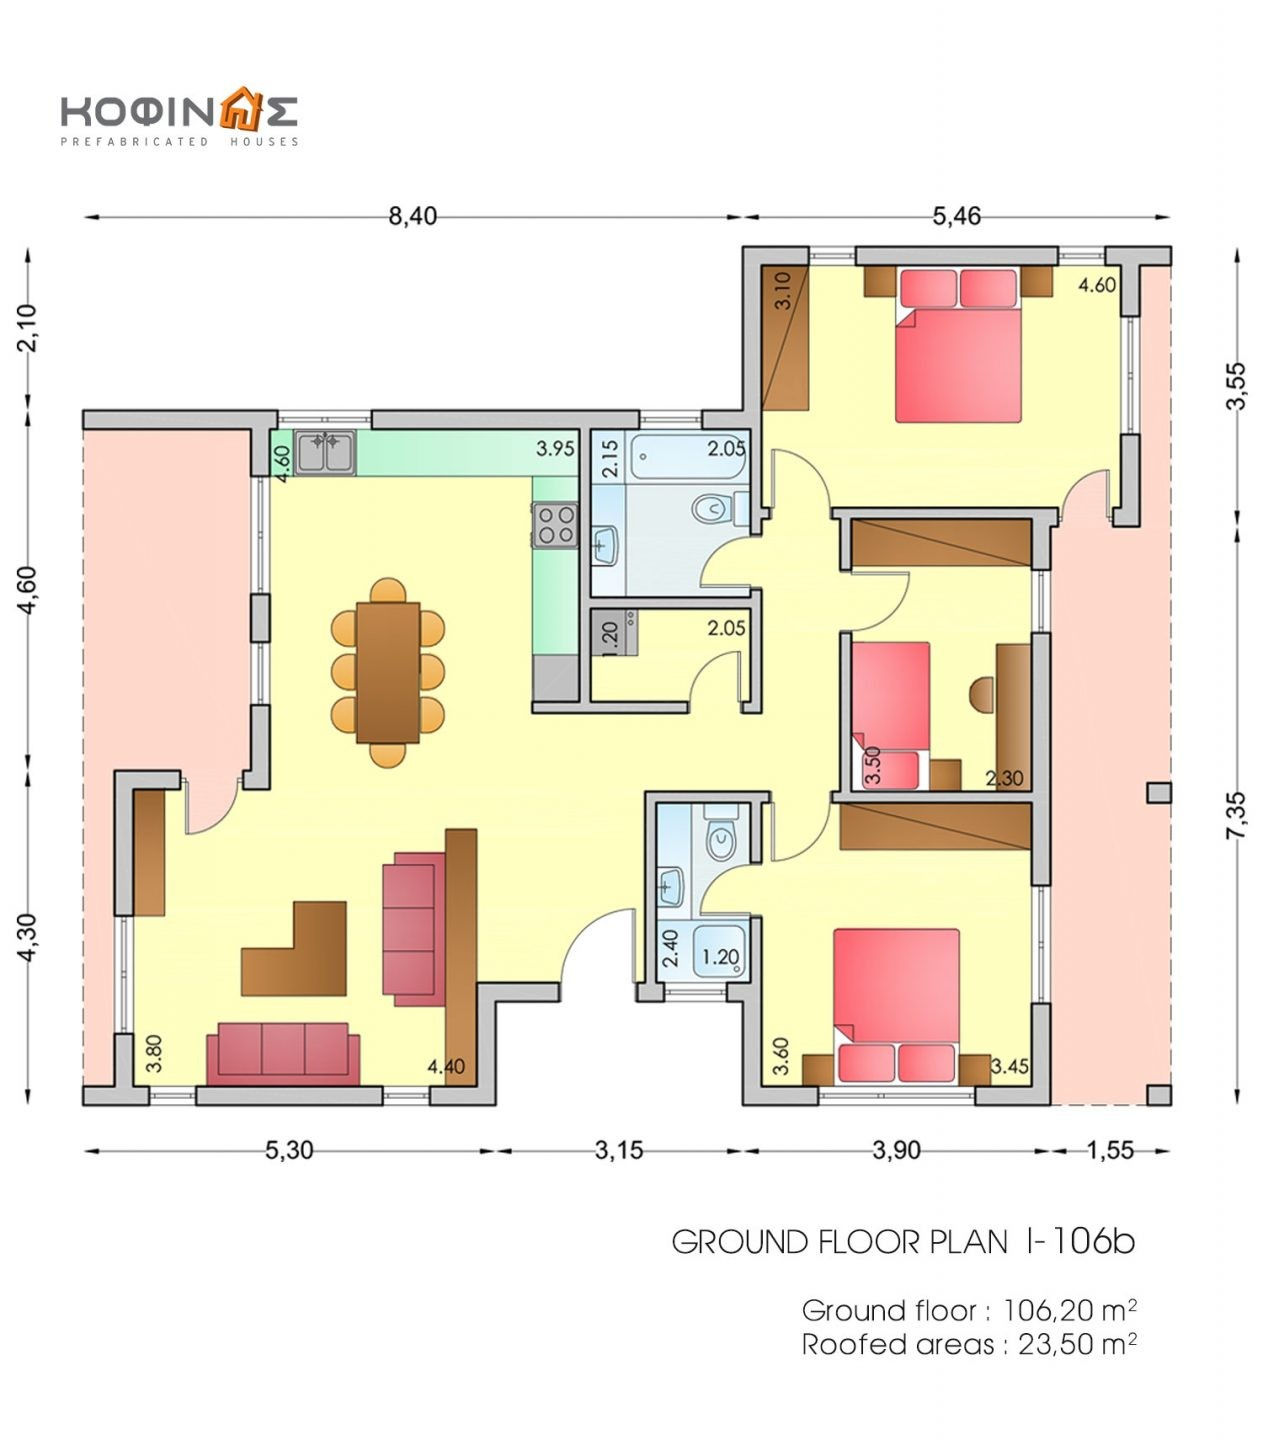 1-story house I-106b, total surface of 106,20 m²